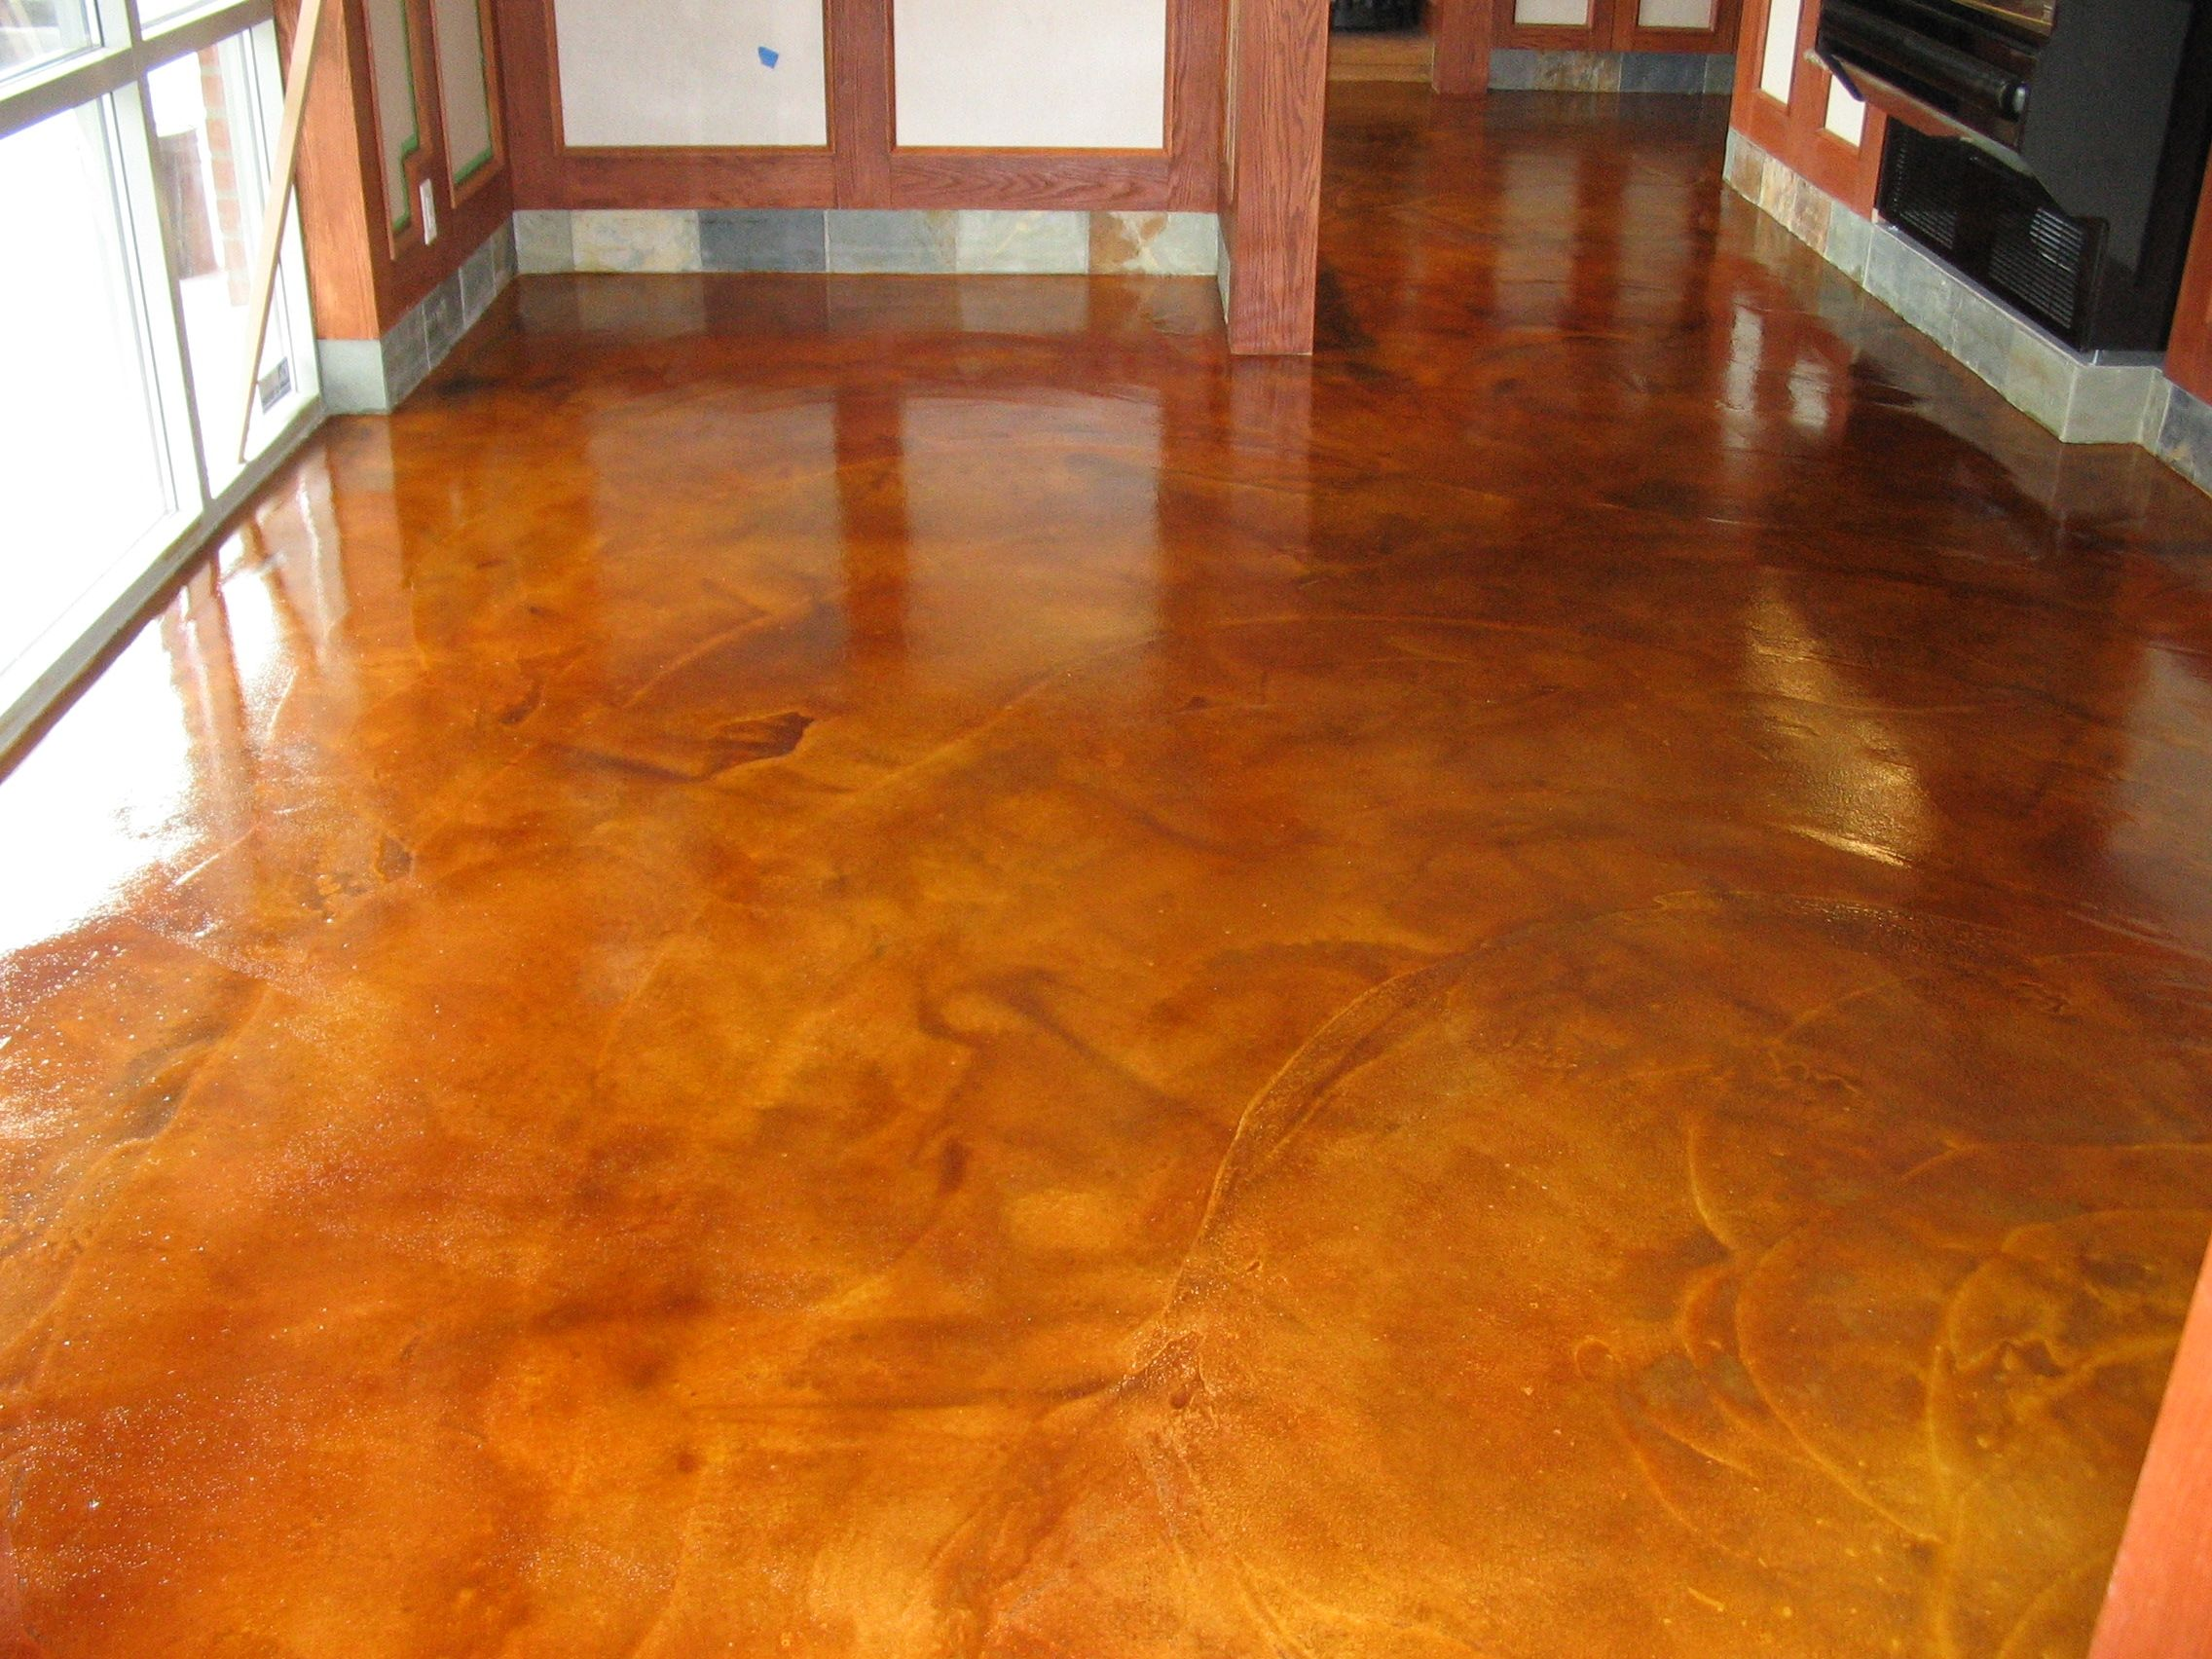 Concrete Wood Floors Rustic Concrete Floors High Gloss Acid Staining Concrete Floors